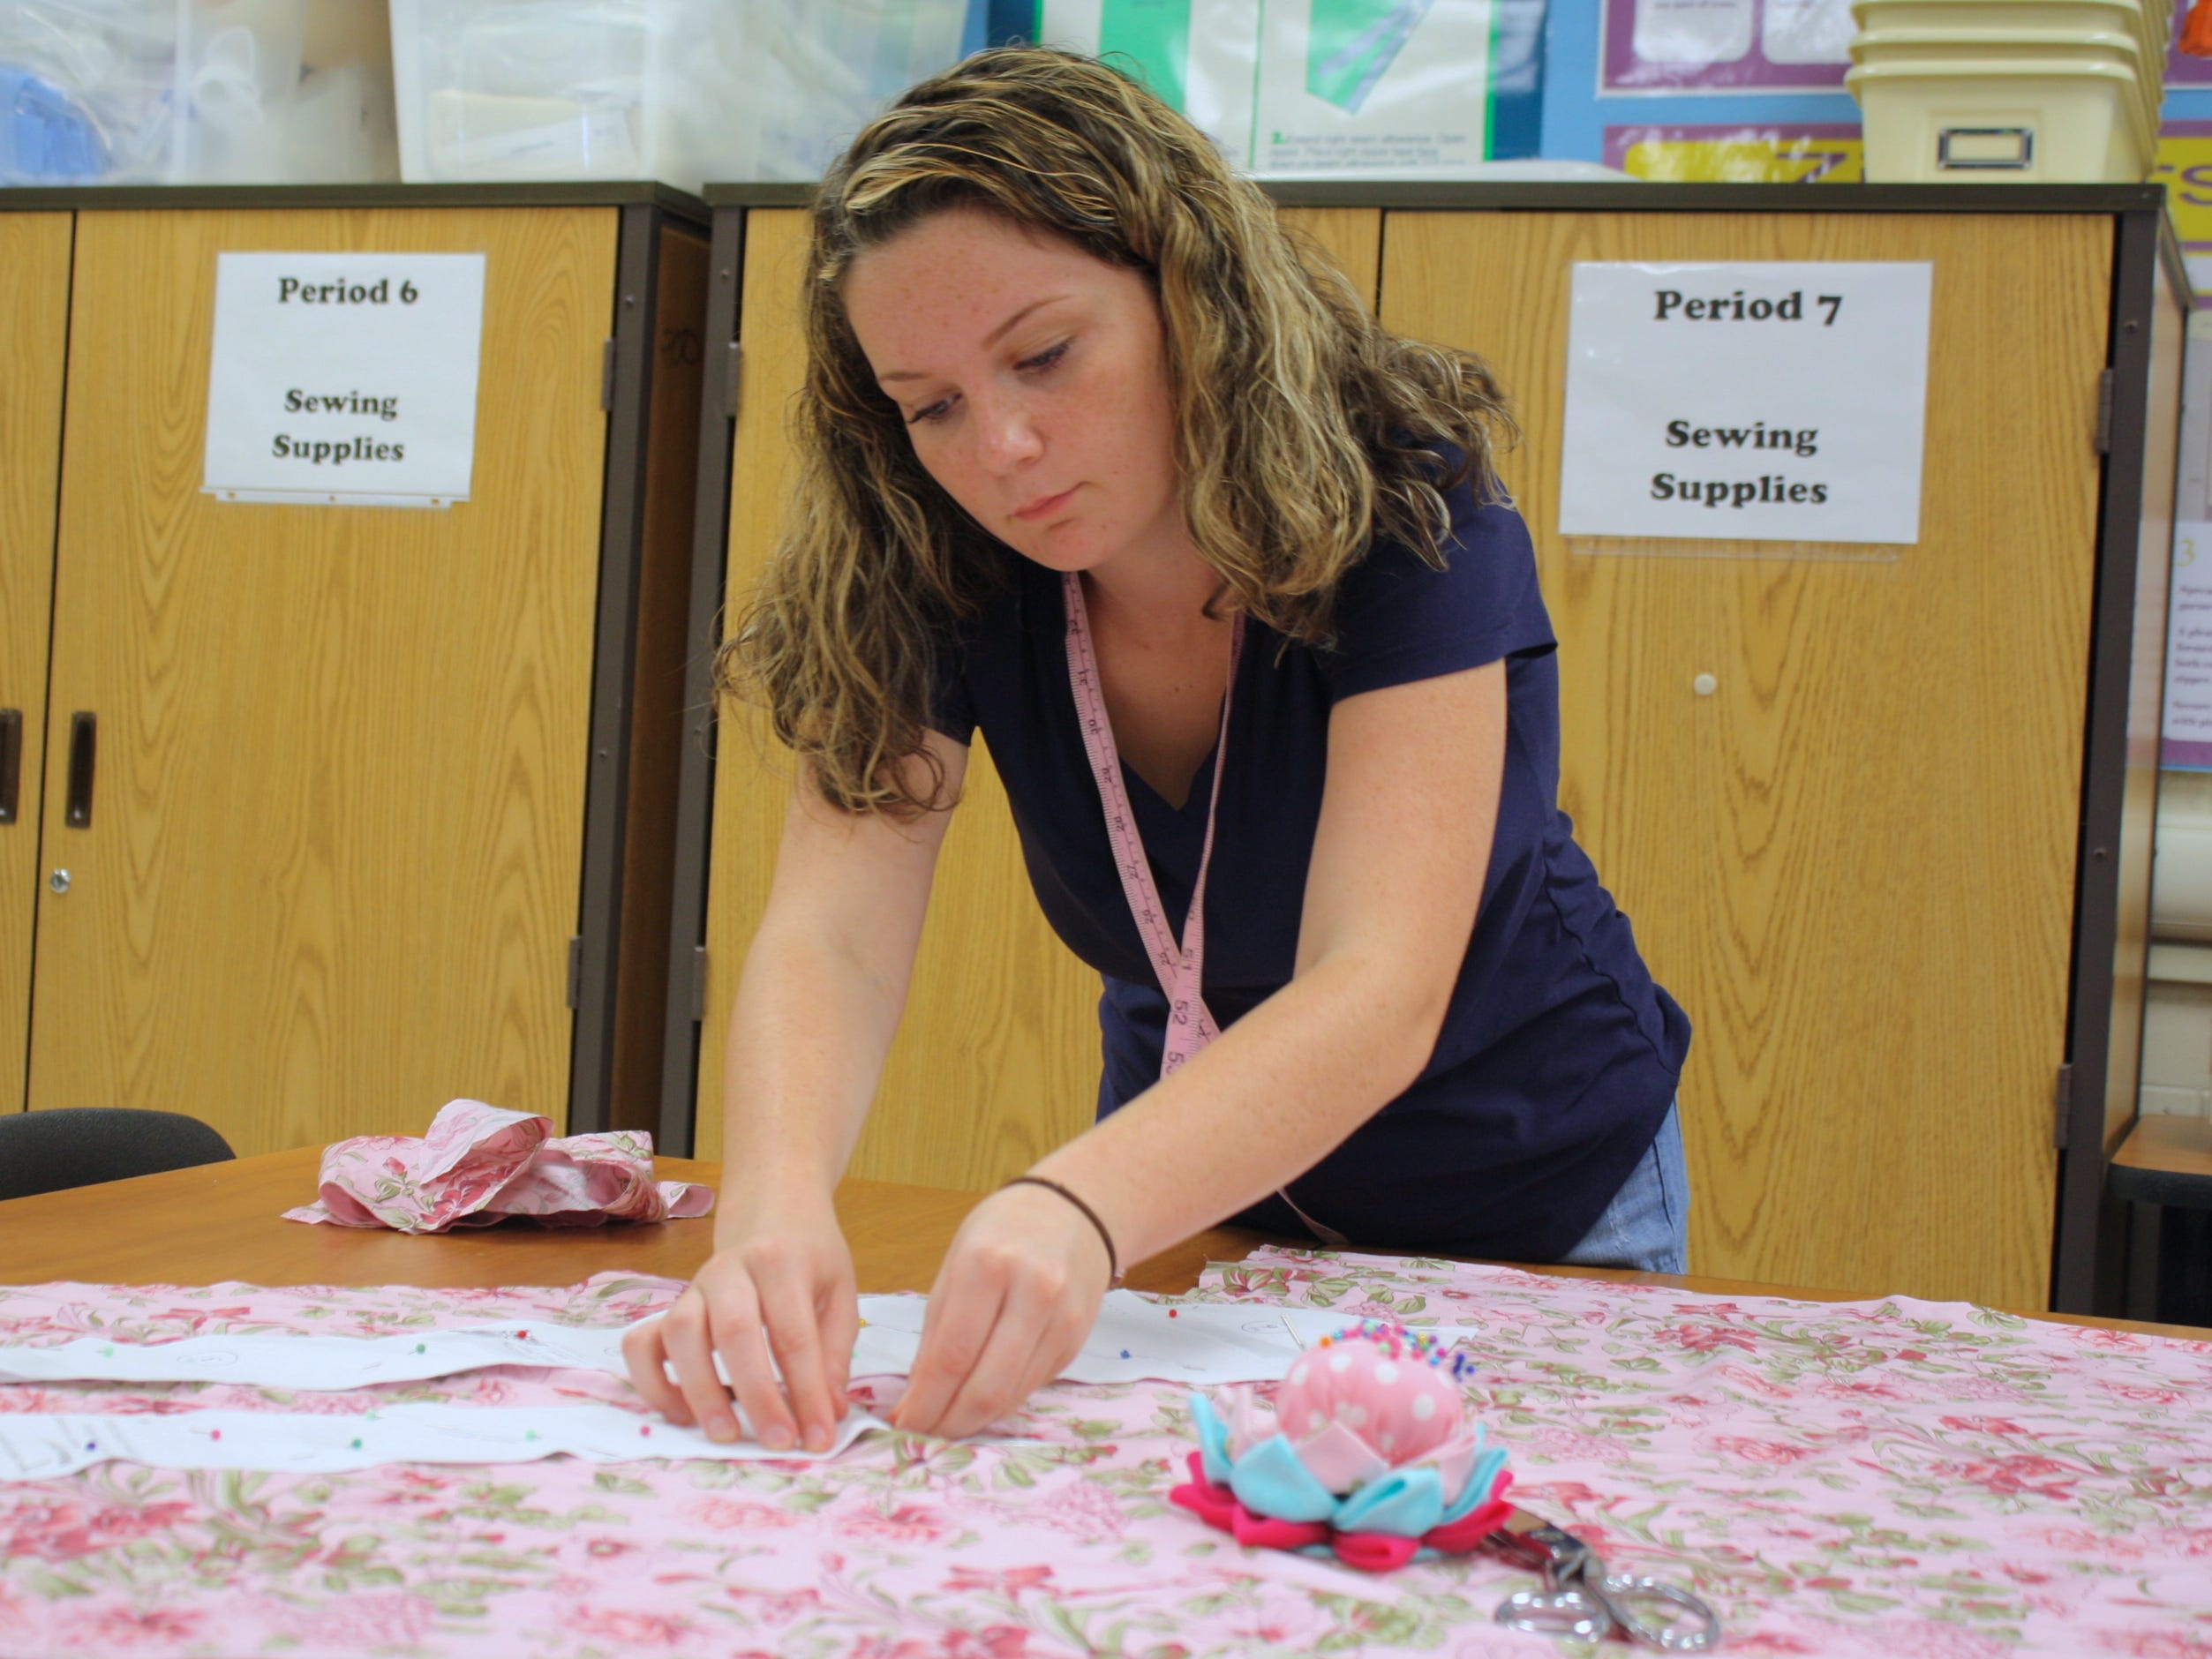 Patience Logsdon, a senior at Palm Bay High School, pins a tie pattern to a floral piece of fabric. She and other fashion design students at Brevard County high schools are making custom ties for Superintendent Mullins to wear during Breast Cancer Awareness Month.